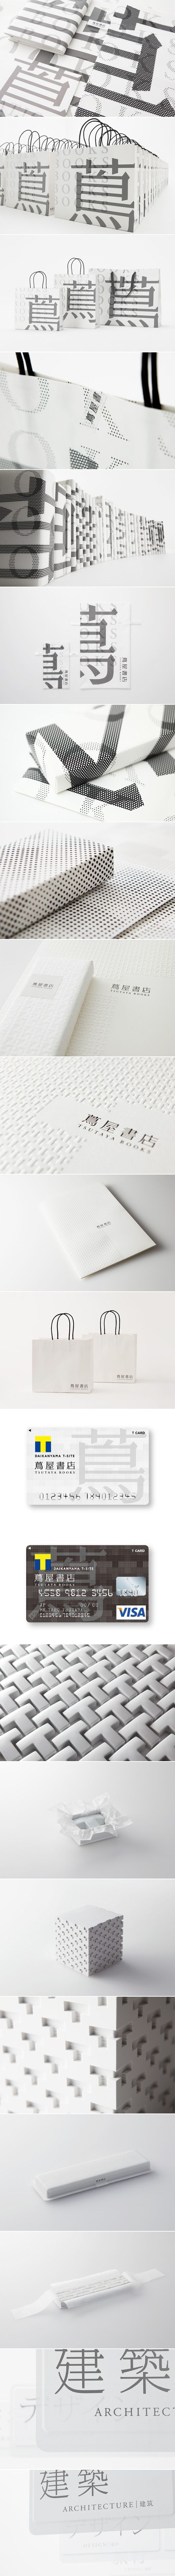 Tsutaya Shoten Bookstore #identity #packaging #branding PD